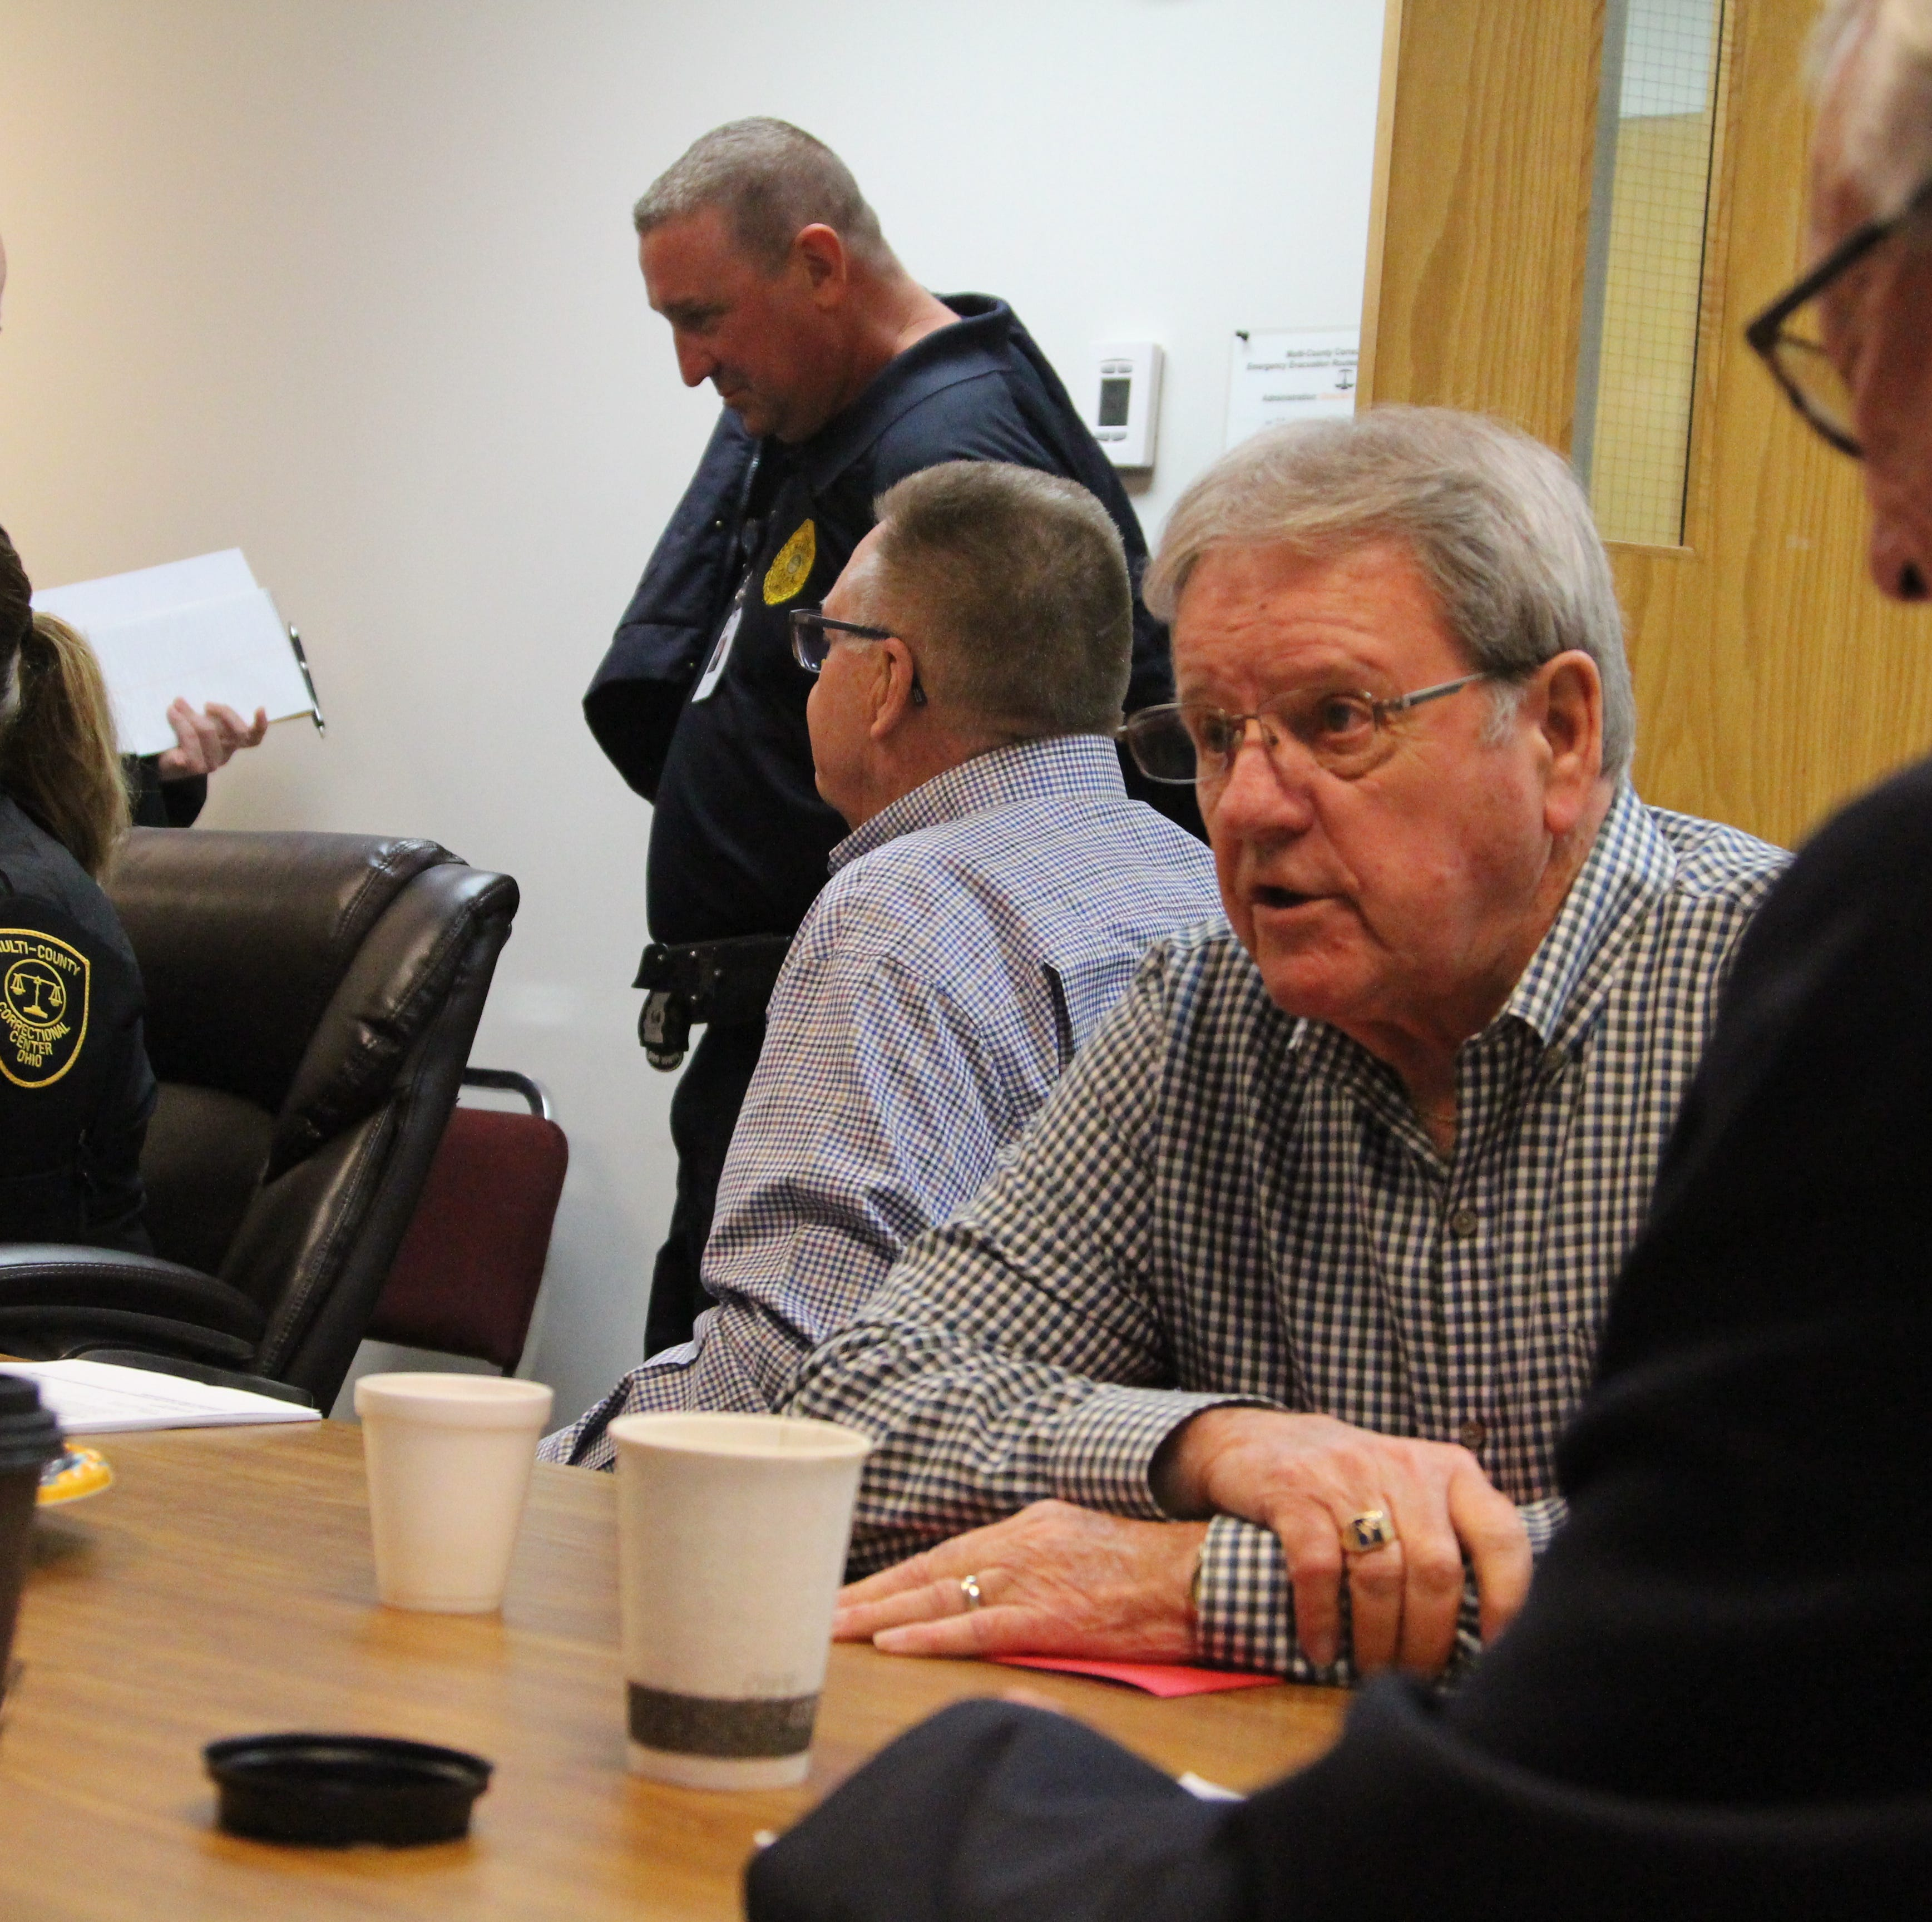 Marion officials exploring options to relieve overcrowded jail